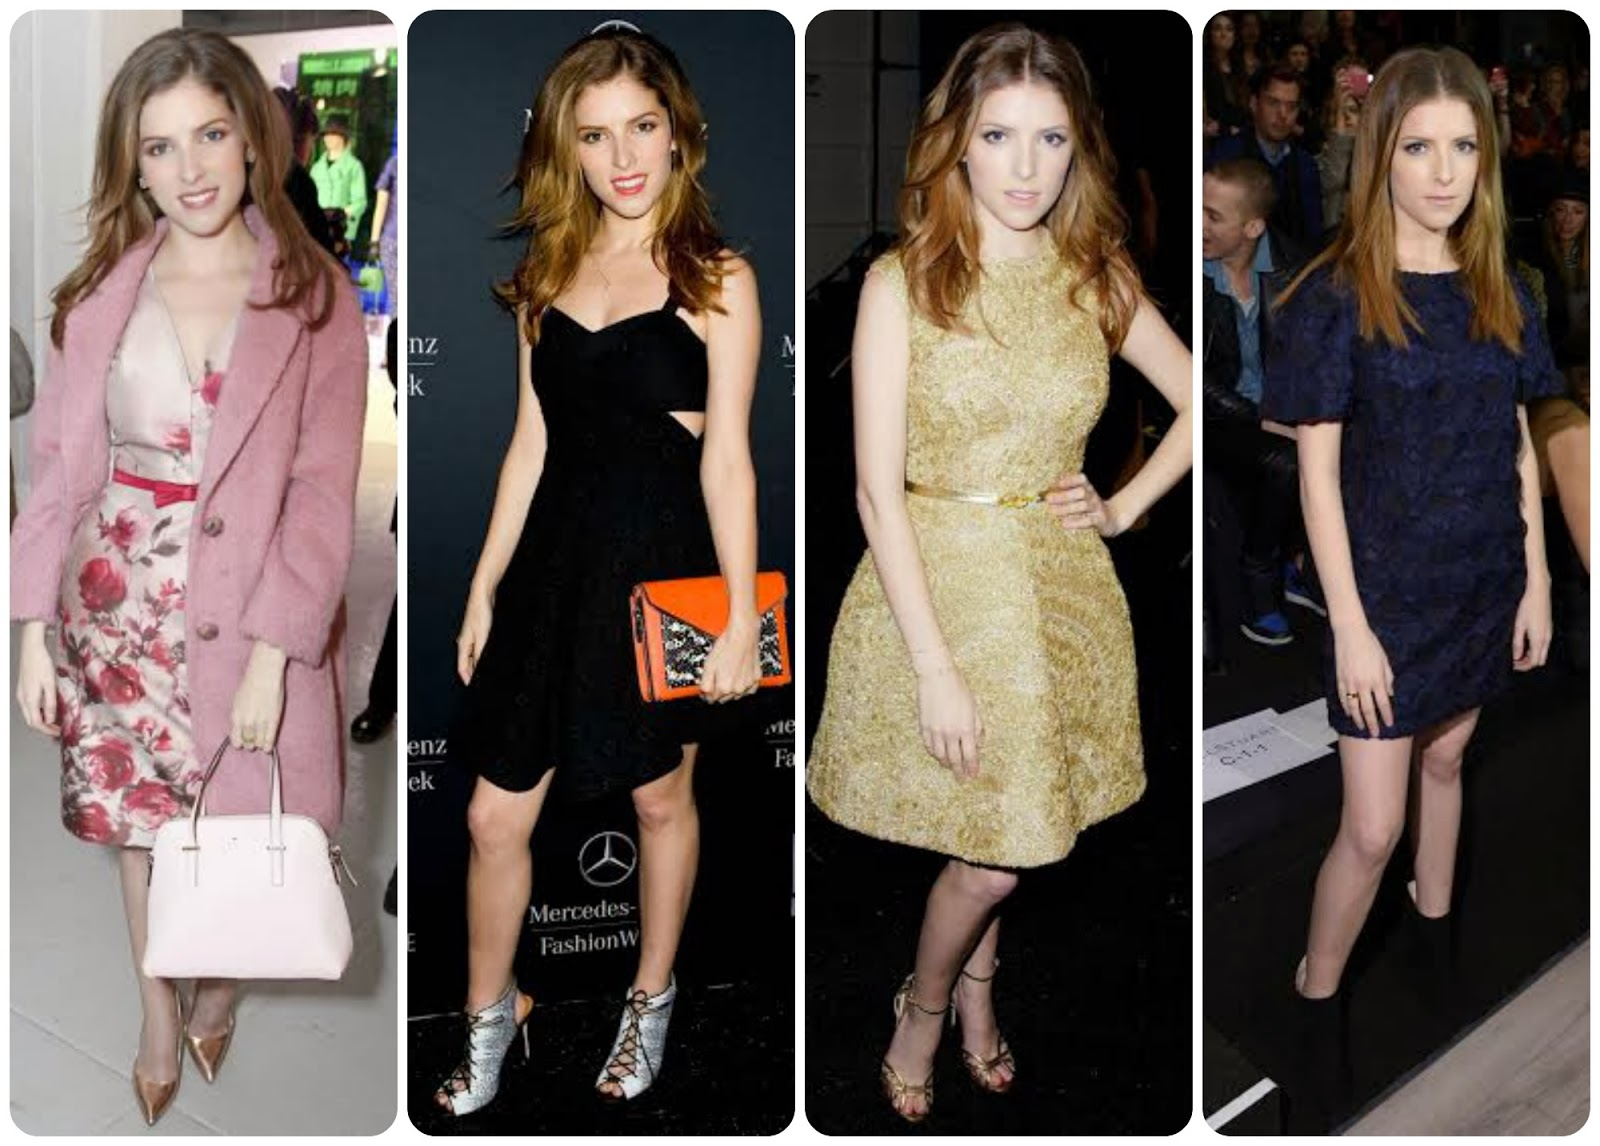 Anna Kendrick attending Monique Lhuillier Kate Spade, Jill Stuart and Rebecca Minkoff fashion show during Mercedes-Benz Fashion Week Fall 2014